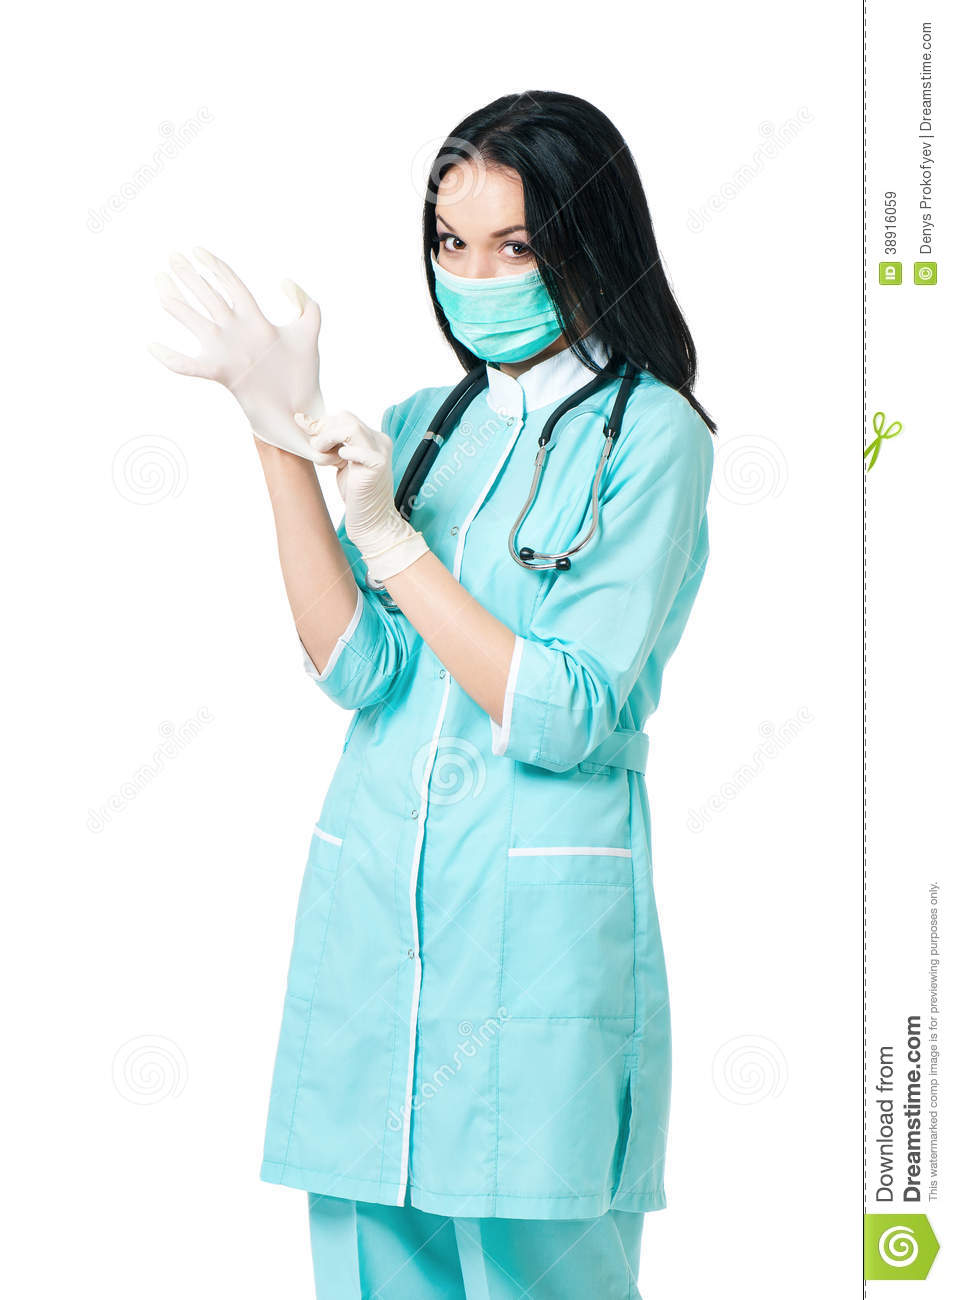 Female Doctor Stock Image Image Of Adult, Glove, Care - 38916059-5085